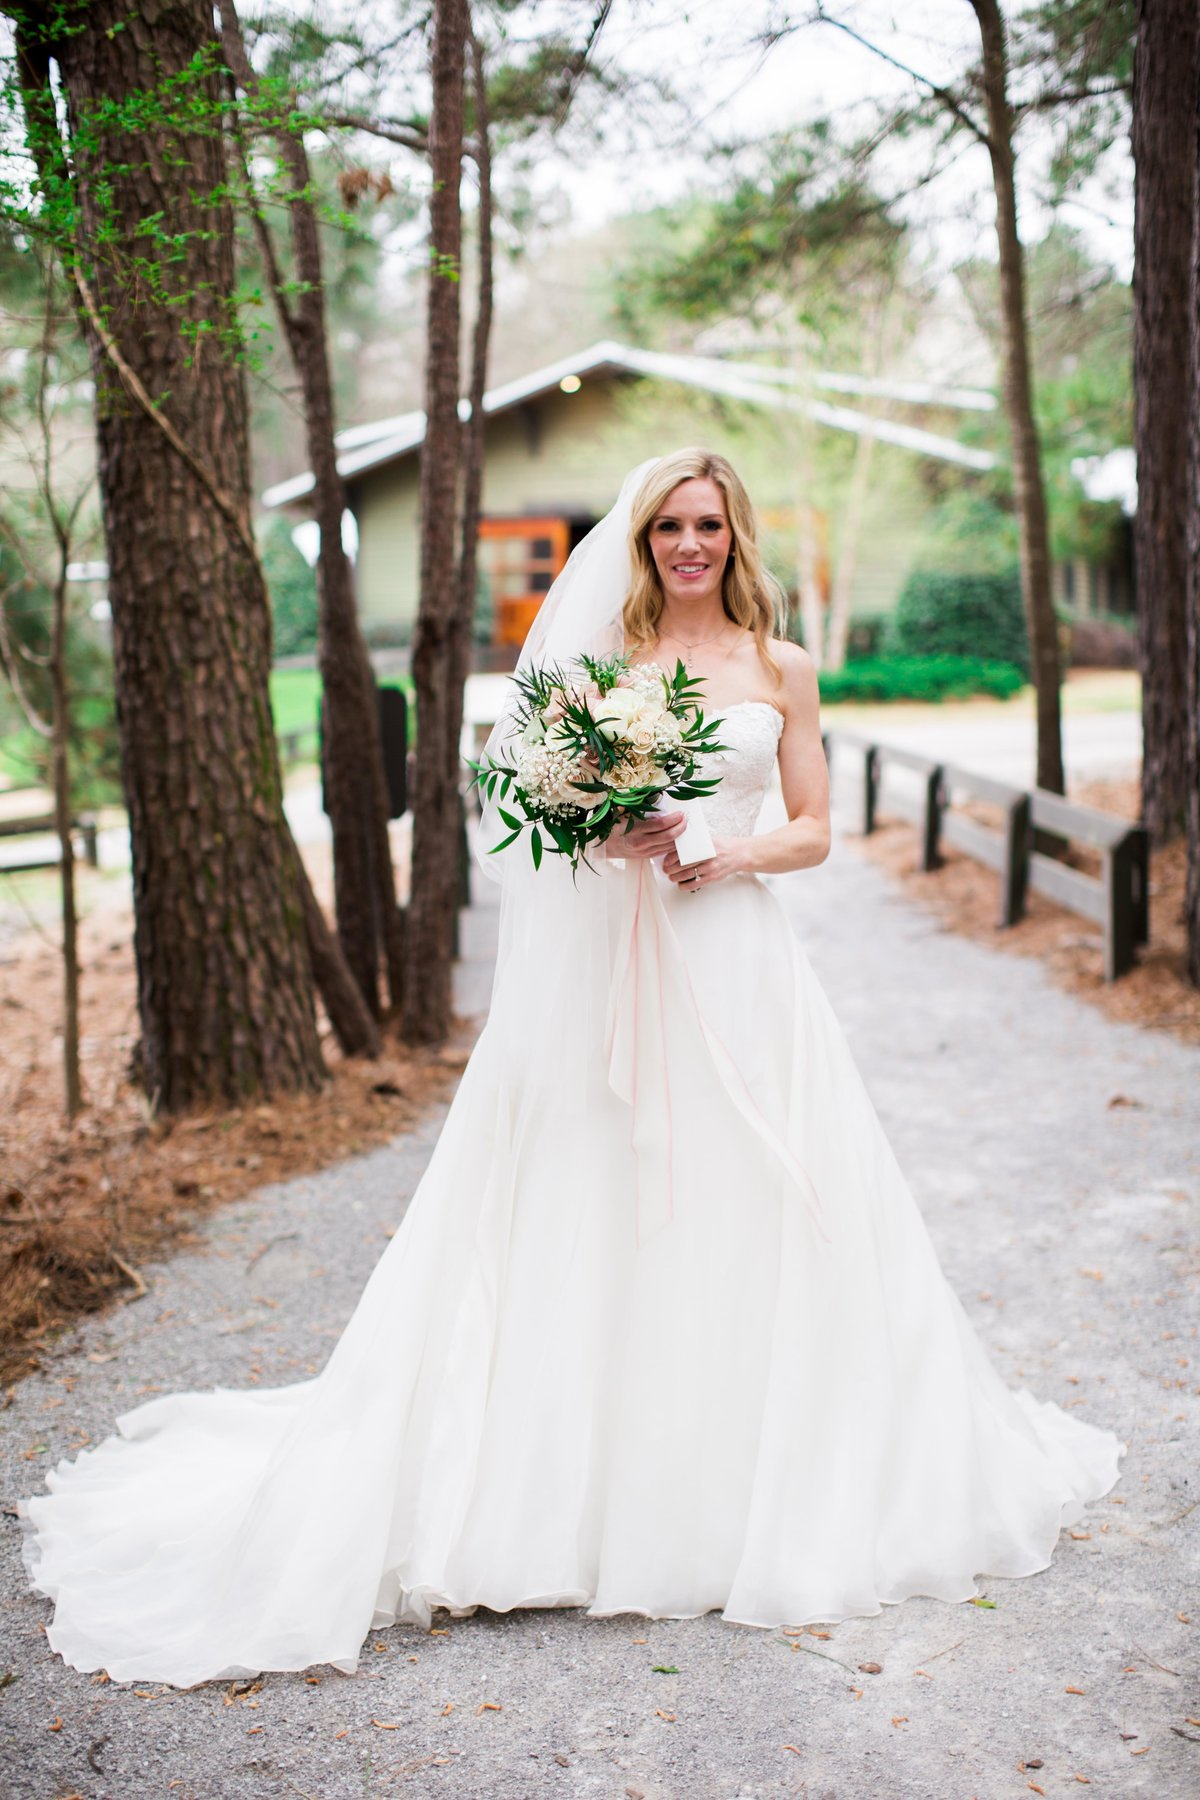 Windwood_Equestrian_Outdoor_Farm_Wedding_VenueArden_Best_Alabama_Birmingham237